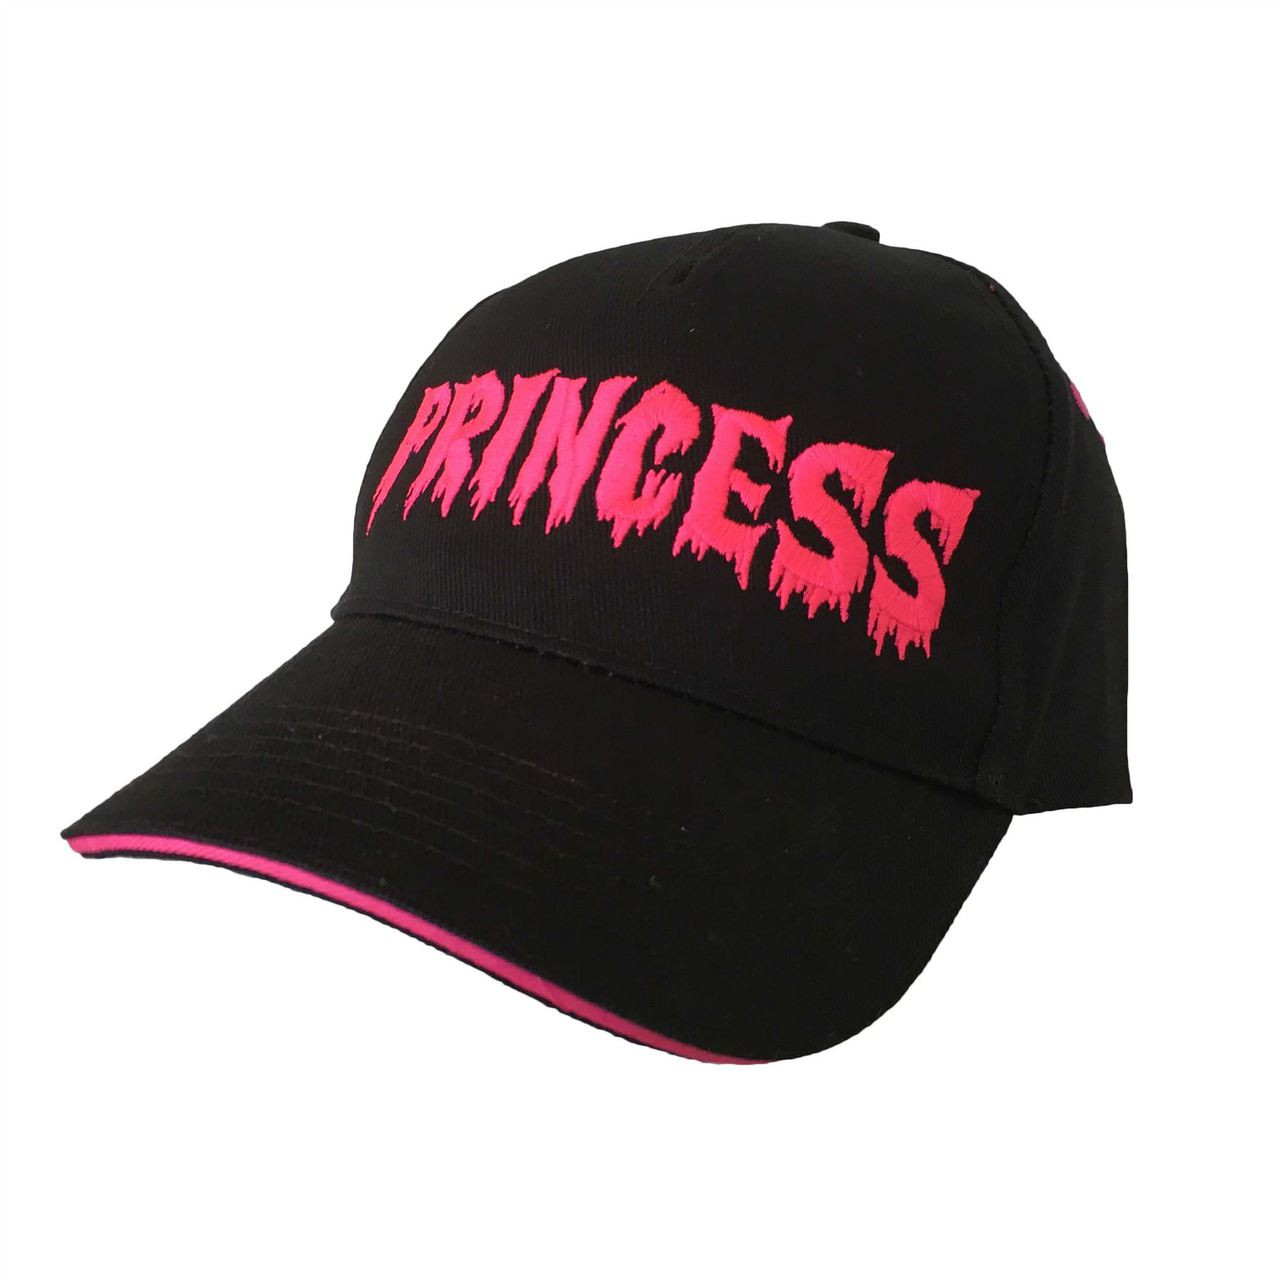 Twisted Princess Sports Cap